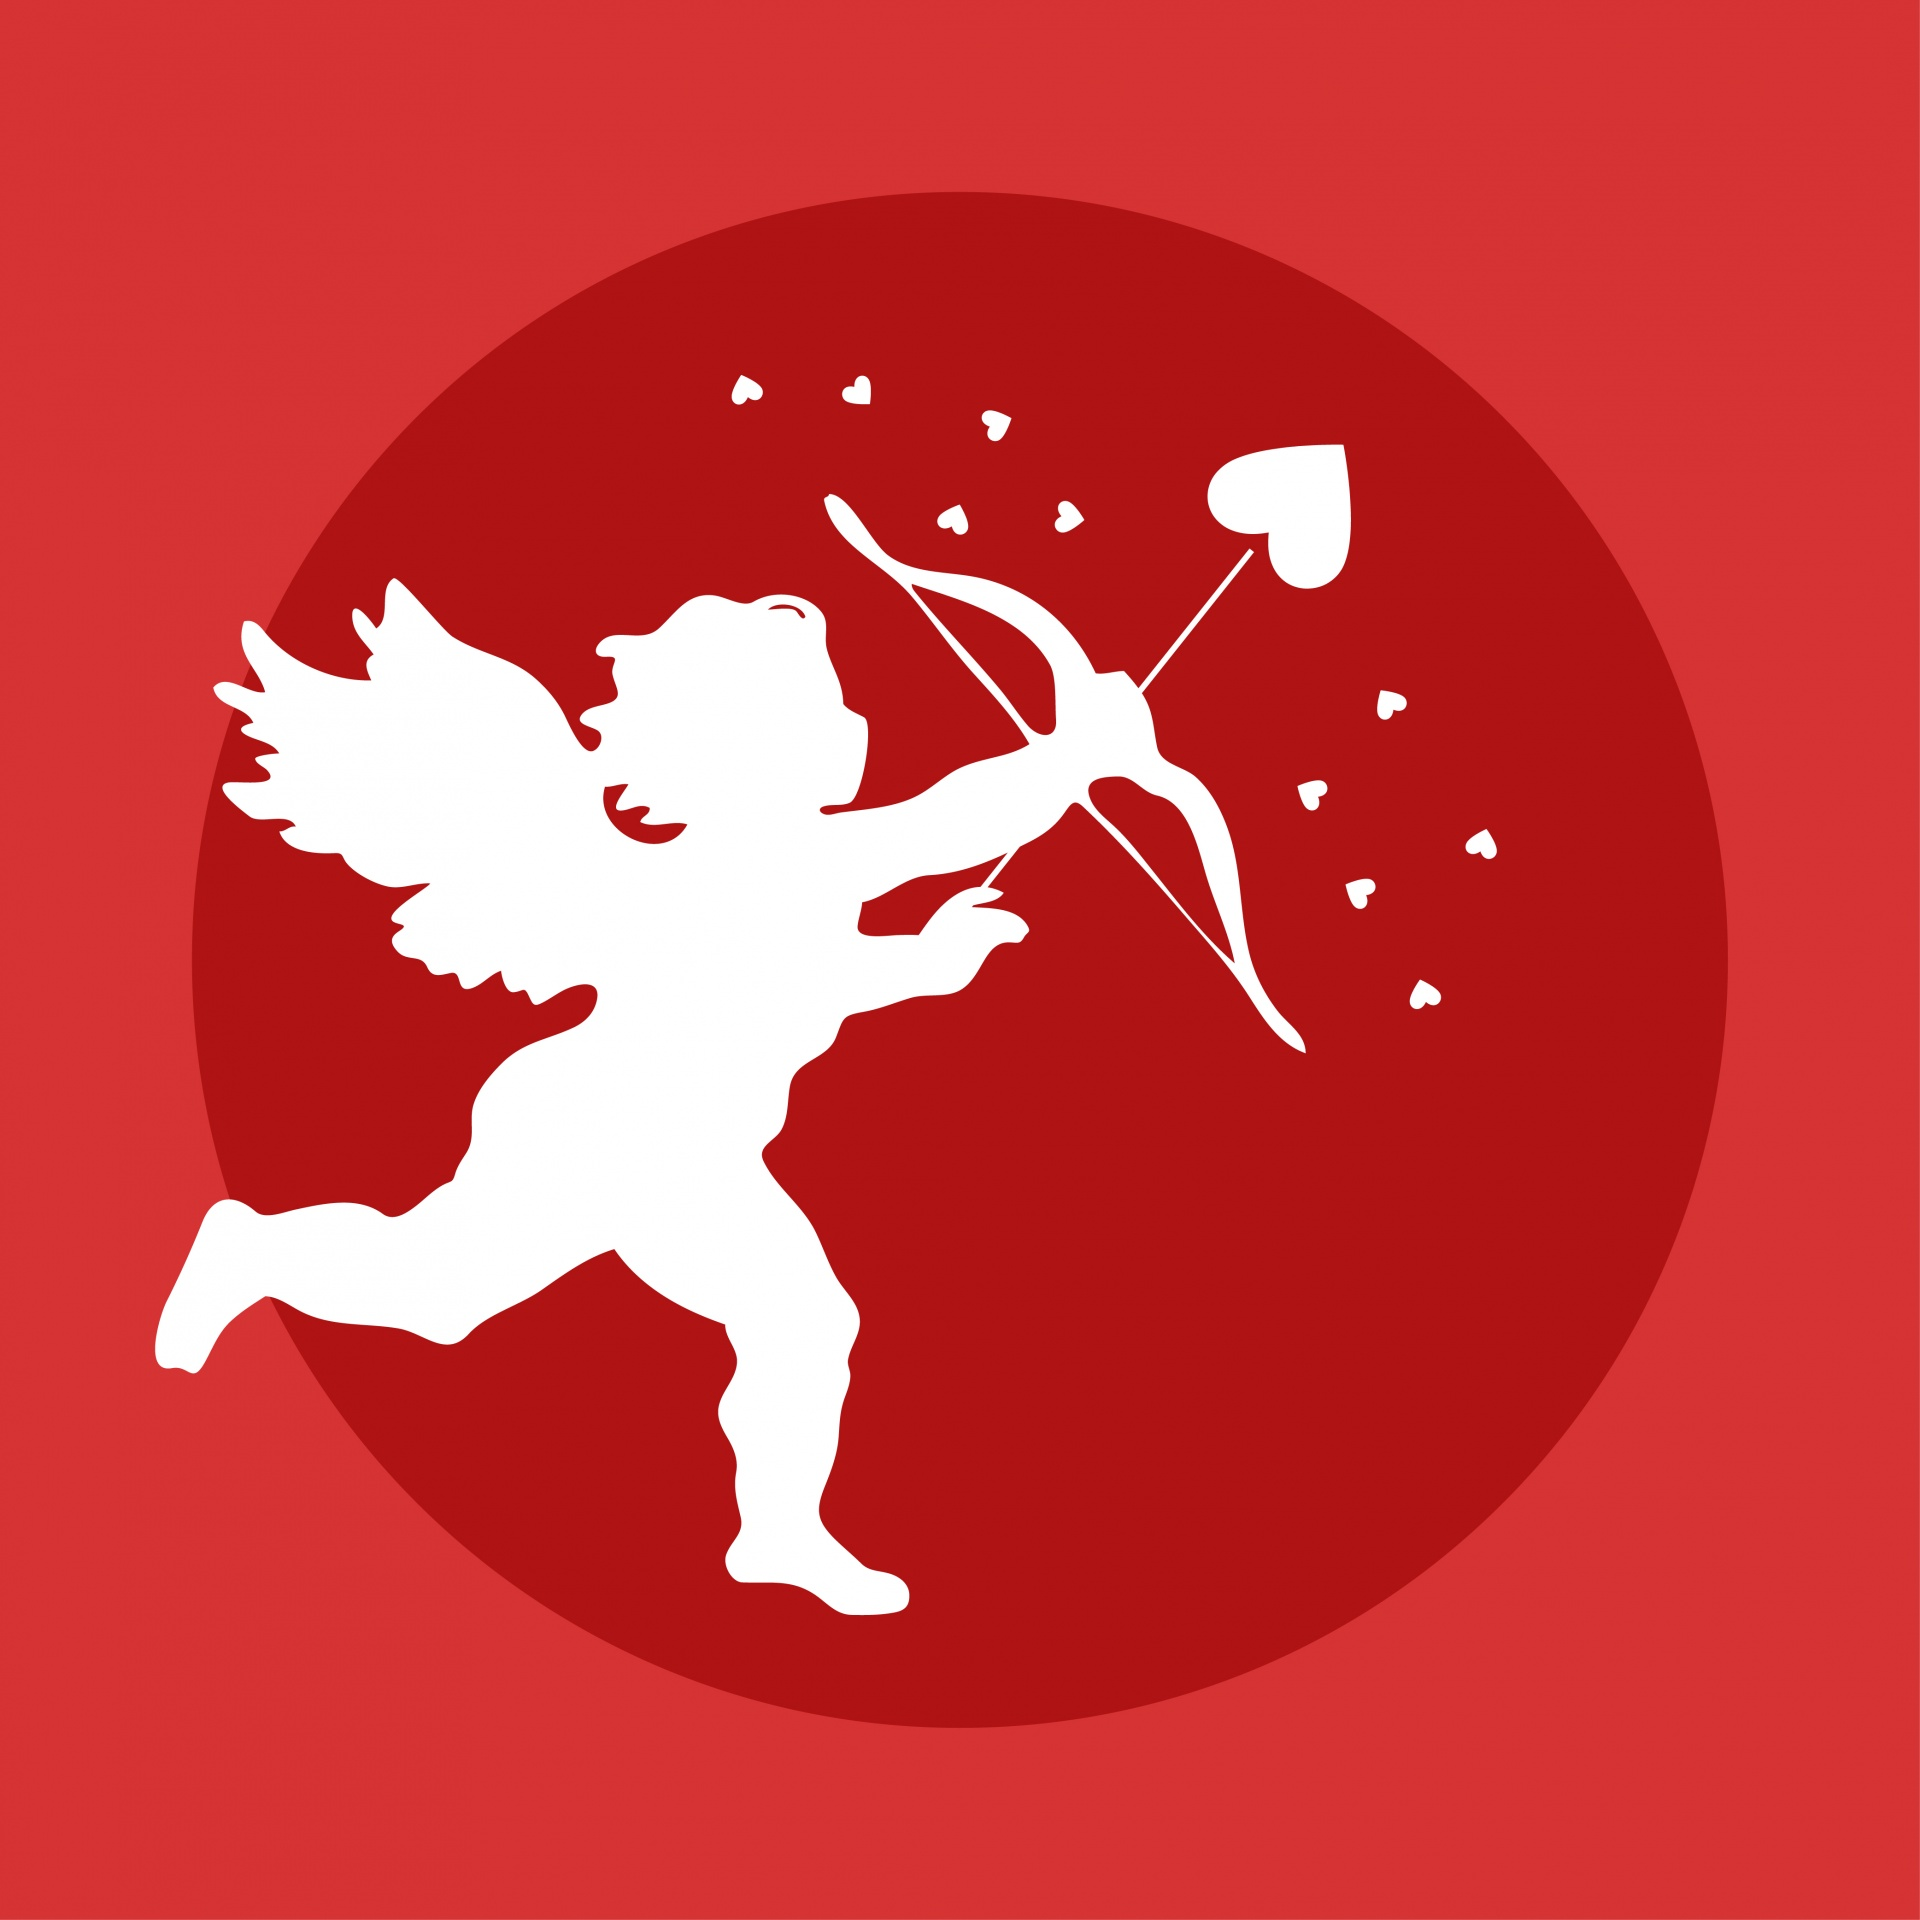 images of cupid with heart